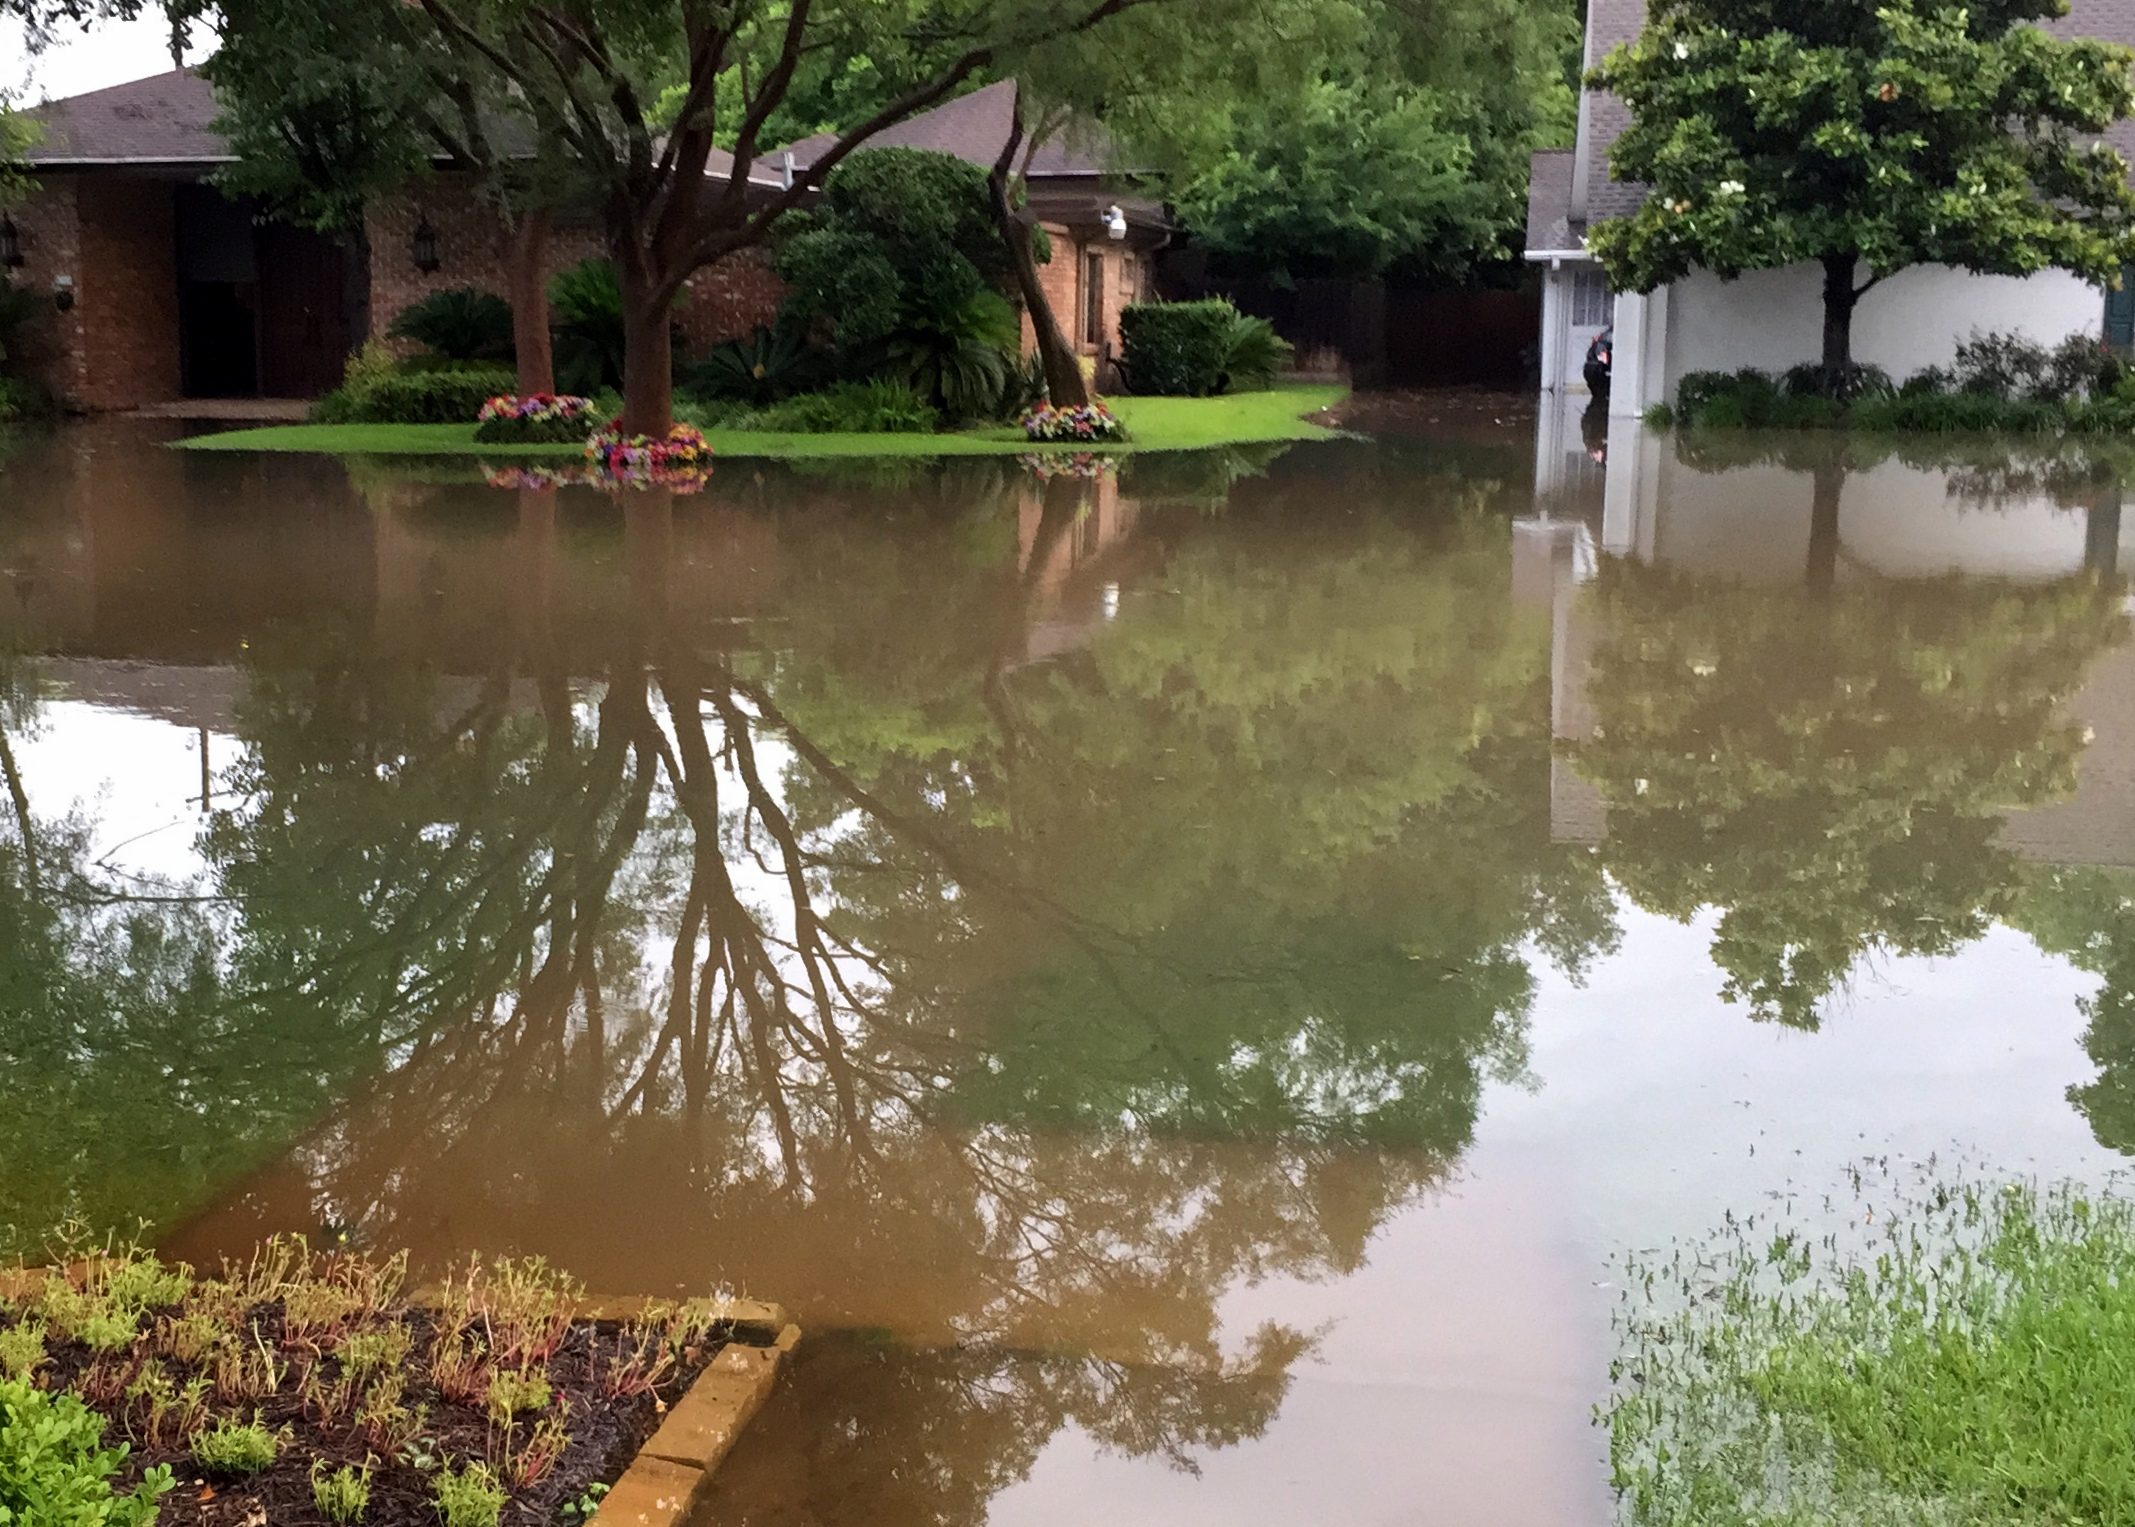 Our sidewalk, lawn, and flower beds were covered with water